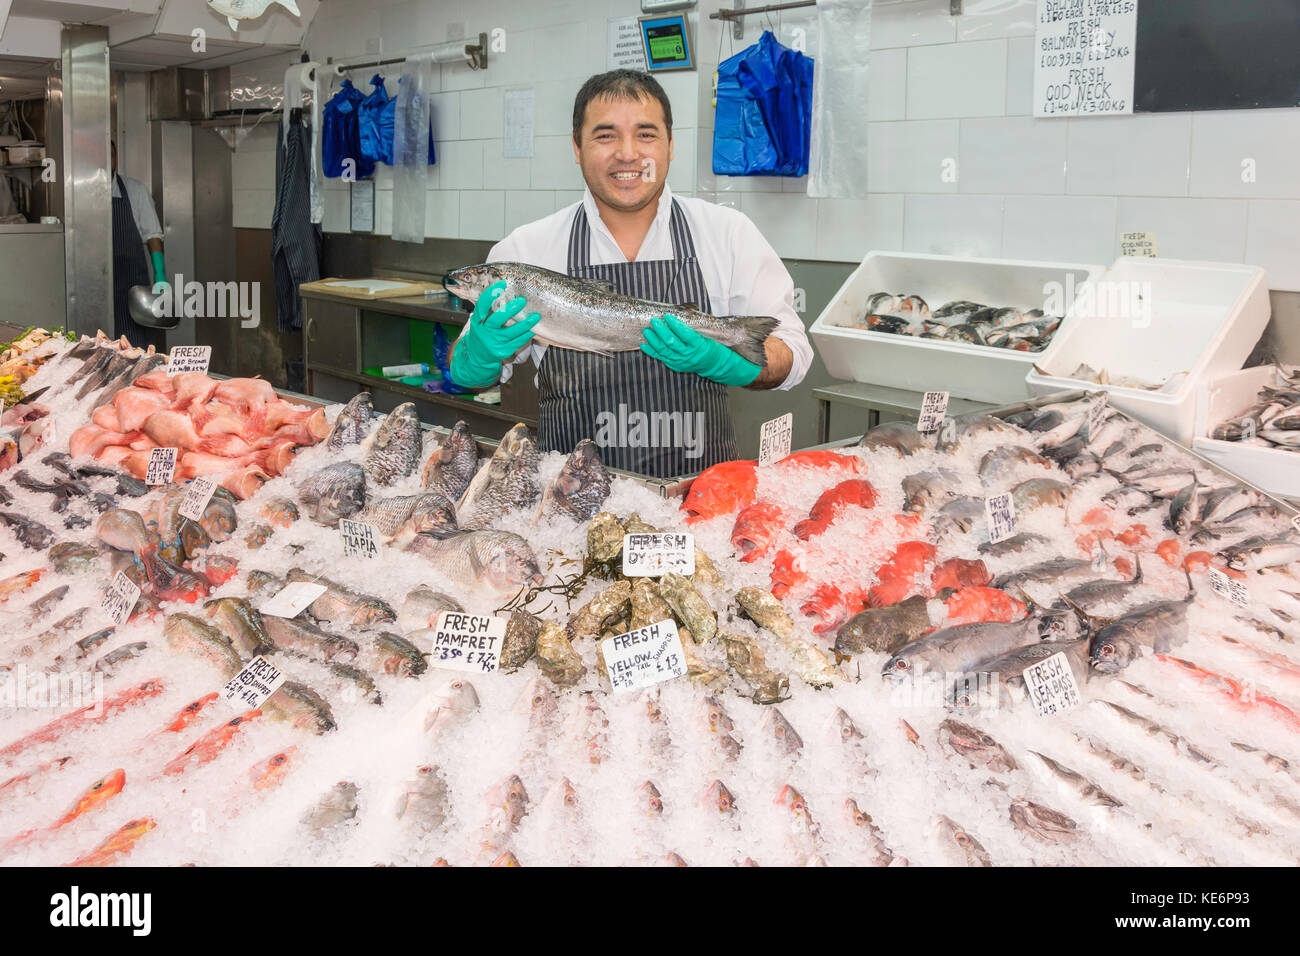 Fishmonger with fresh fish display, Walthamstow High Street, Walthamstow, London Borough of Waltham Forest, Greater - Stock Image